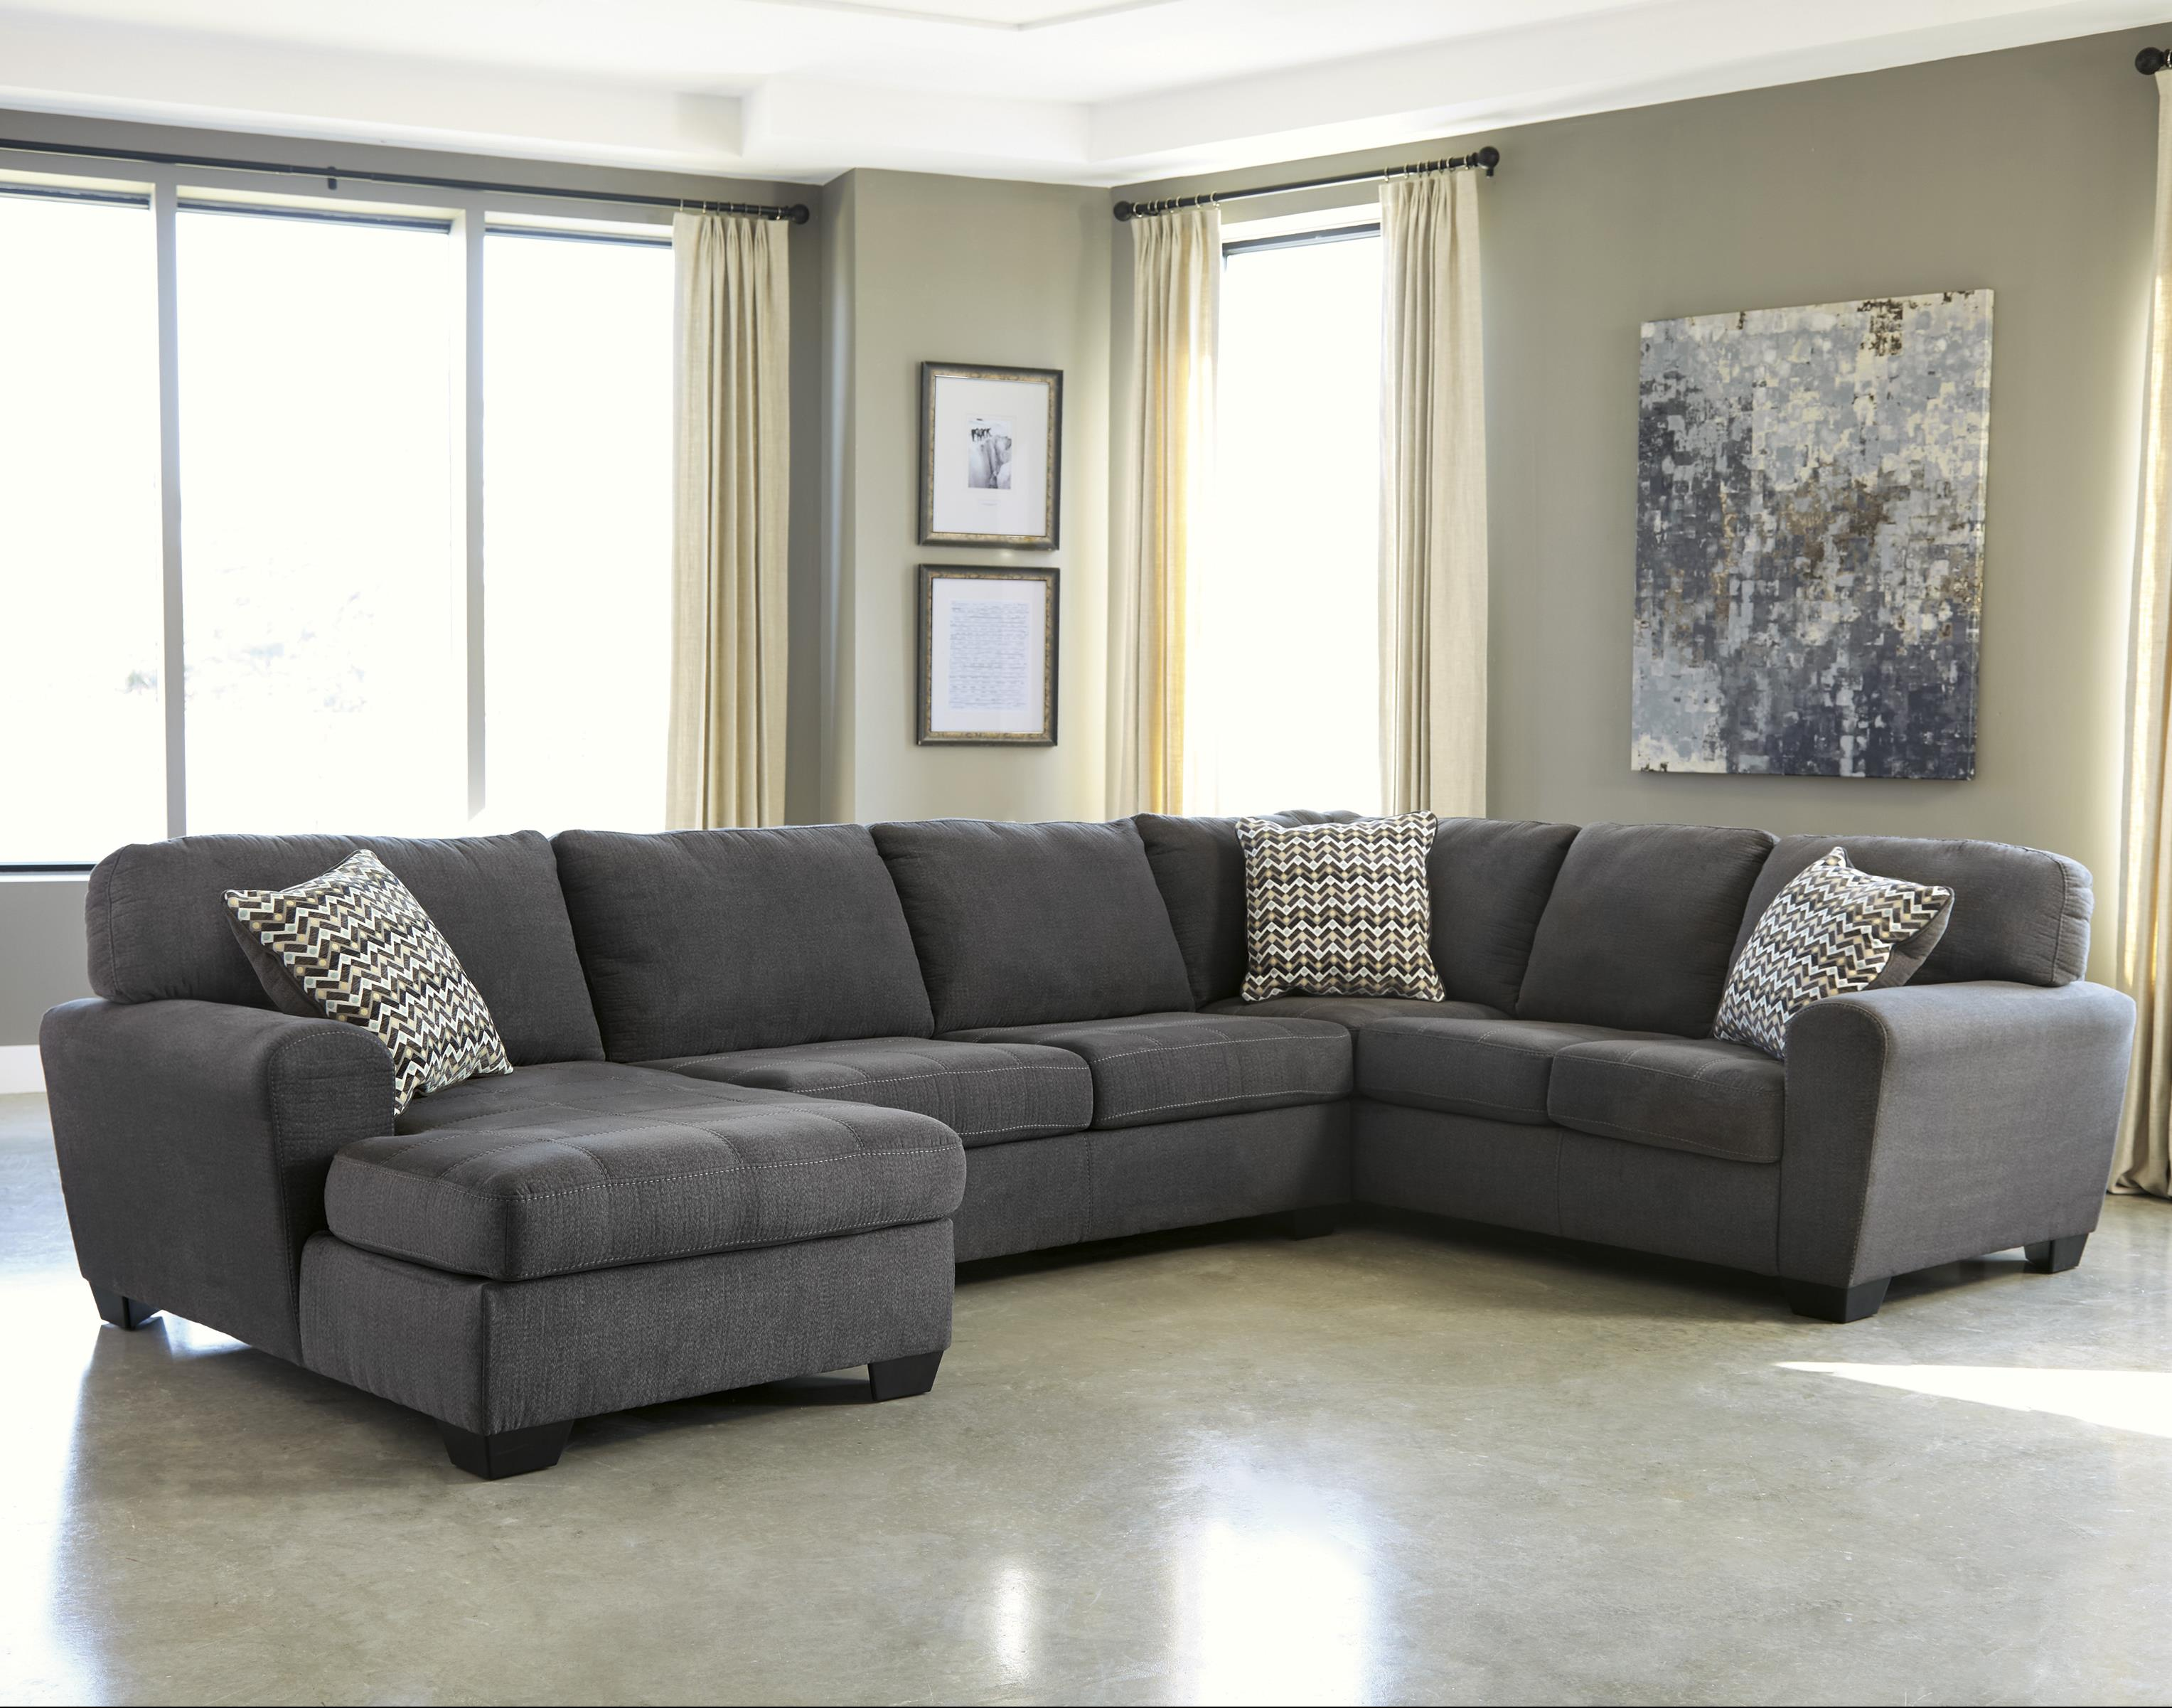 Benchcraft sorenton contemporary 3 piece sectional with for Furniture 3 rooms for 1999